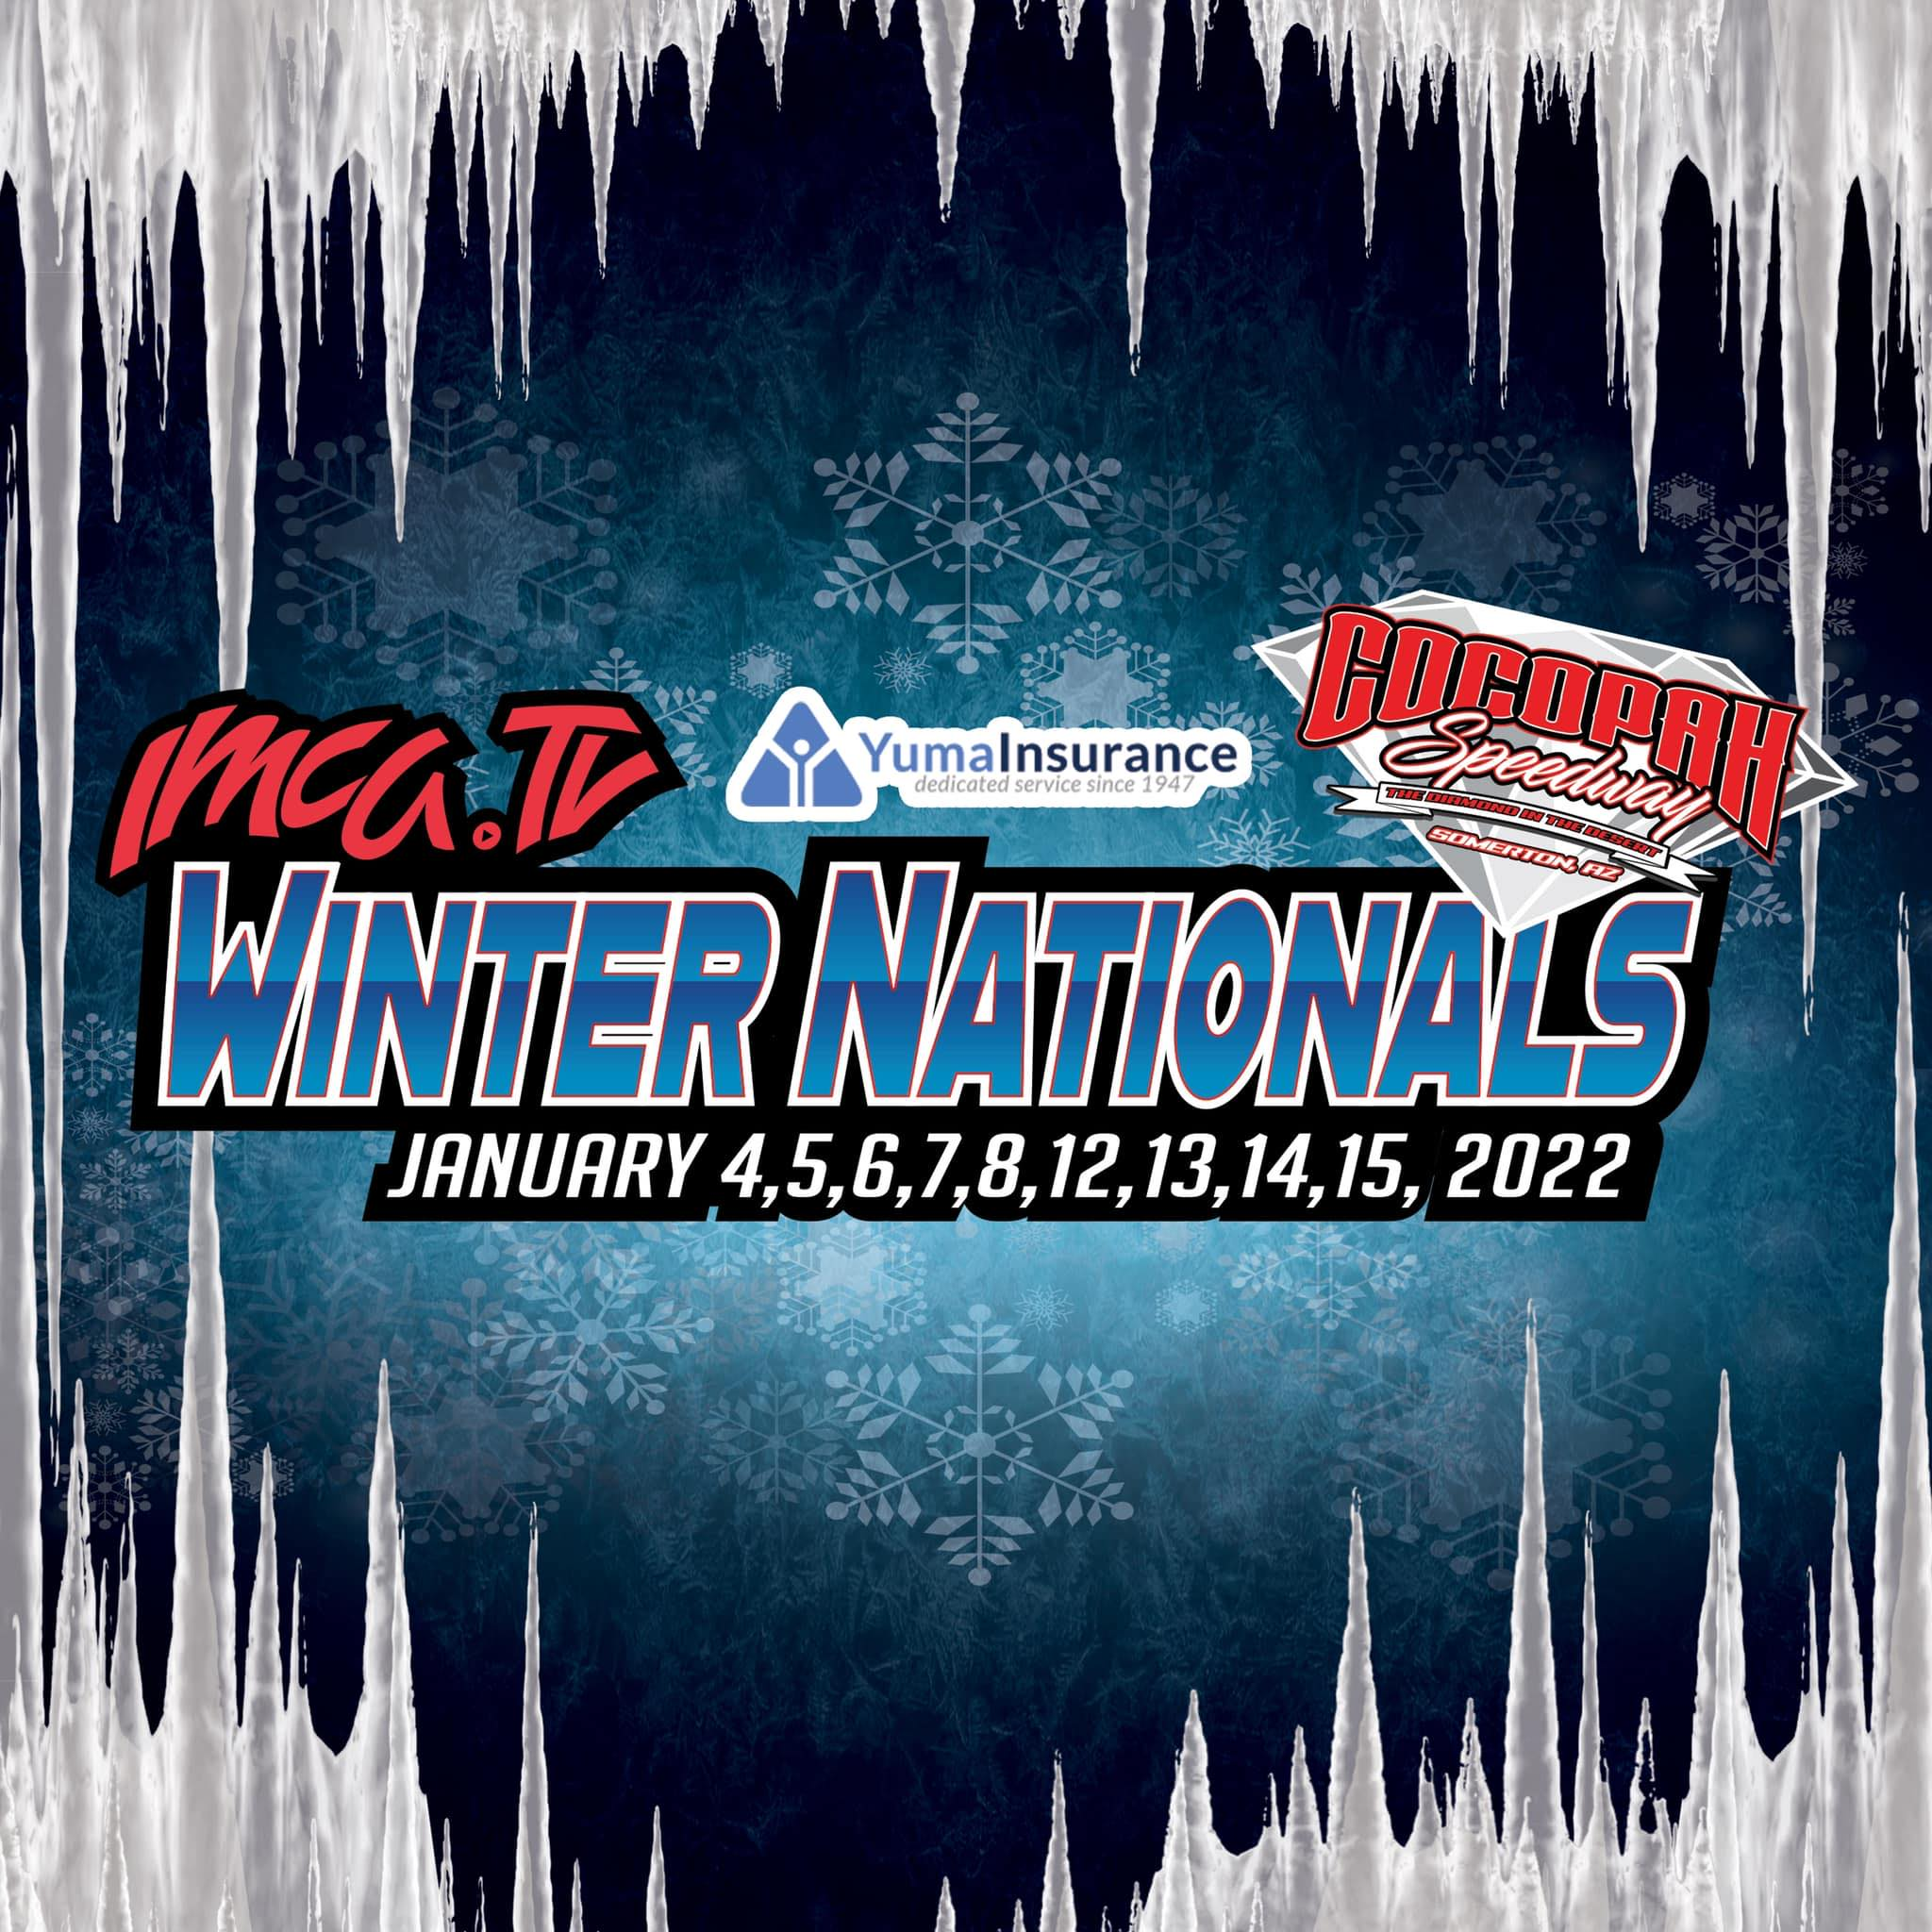 IMCA.TV Winter Nationals presented by Yuma Insurance to kick of 2022 season at The Diamond in the Desert